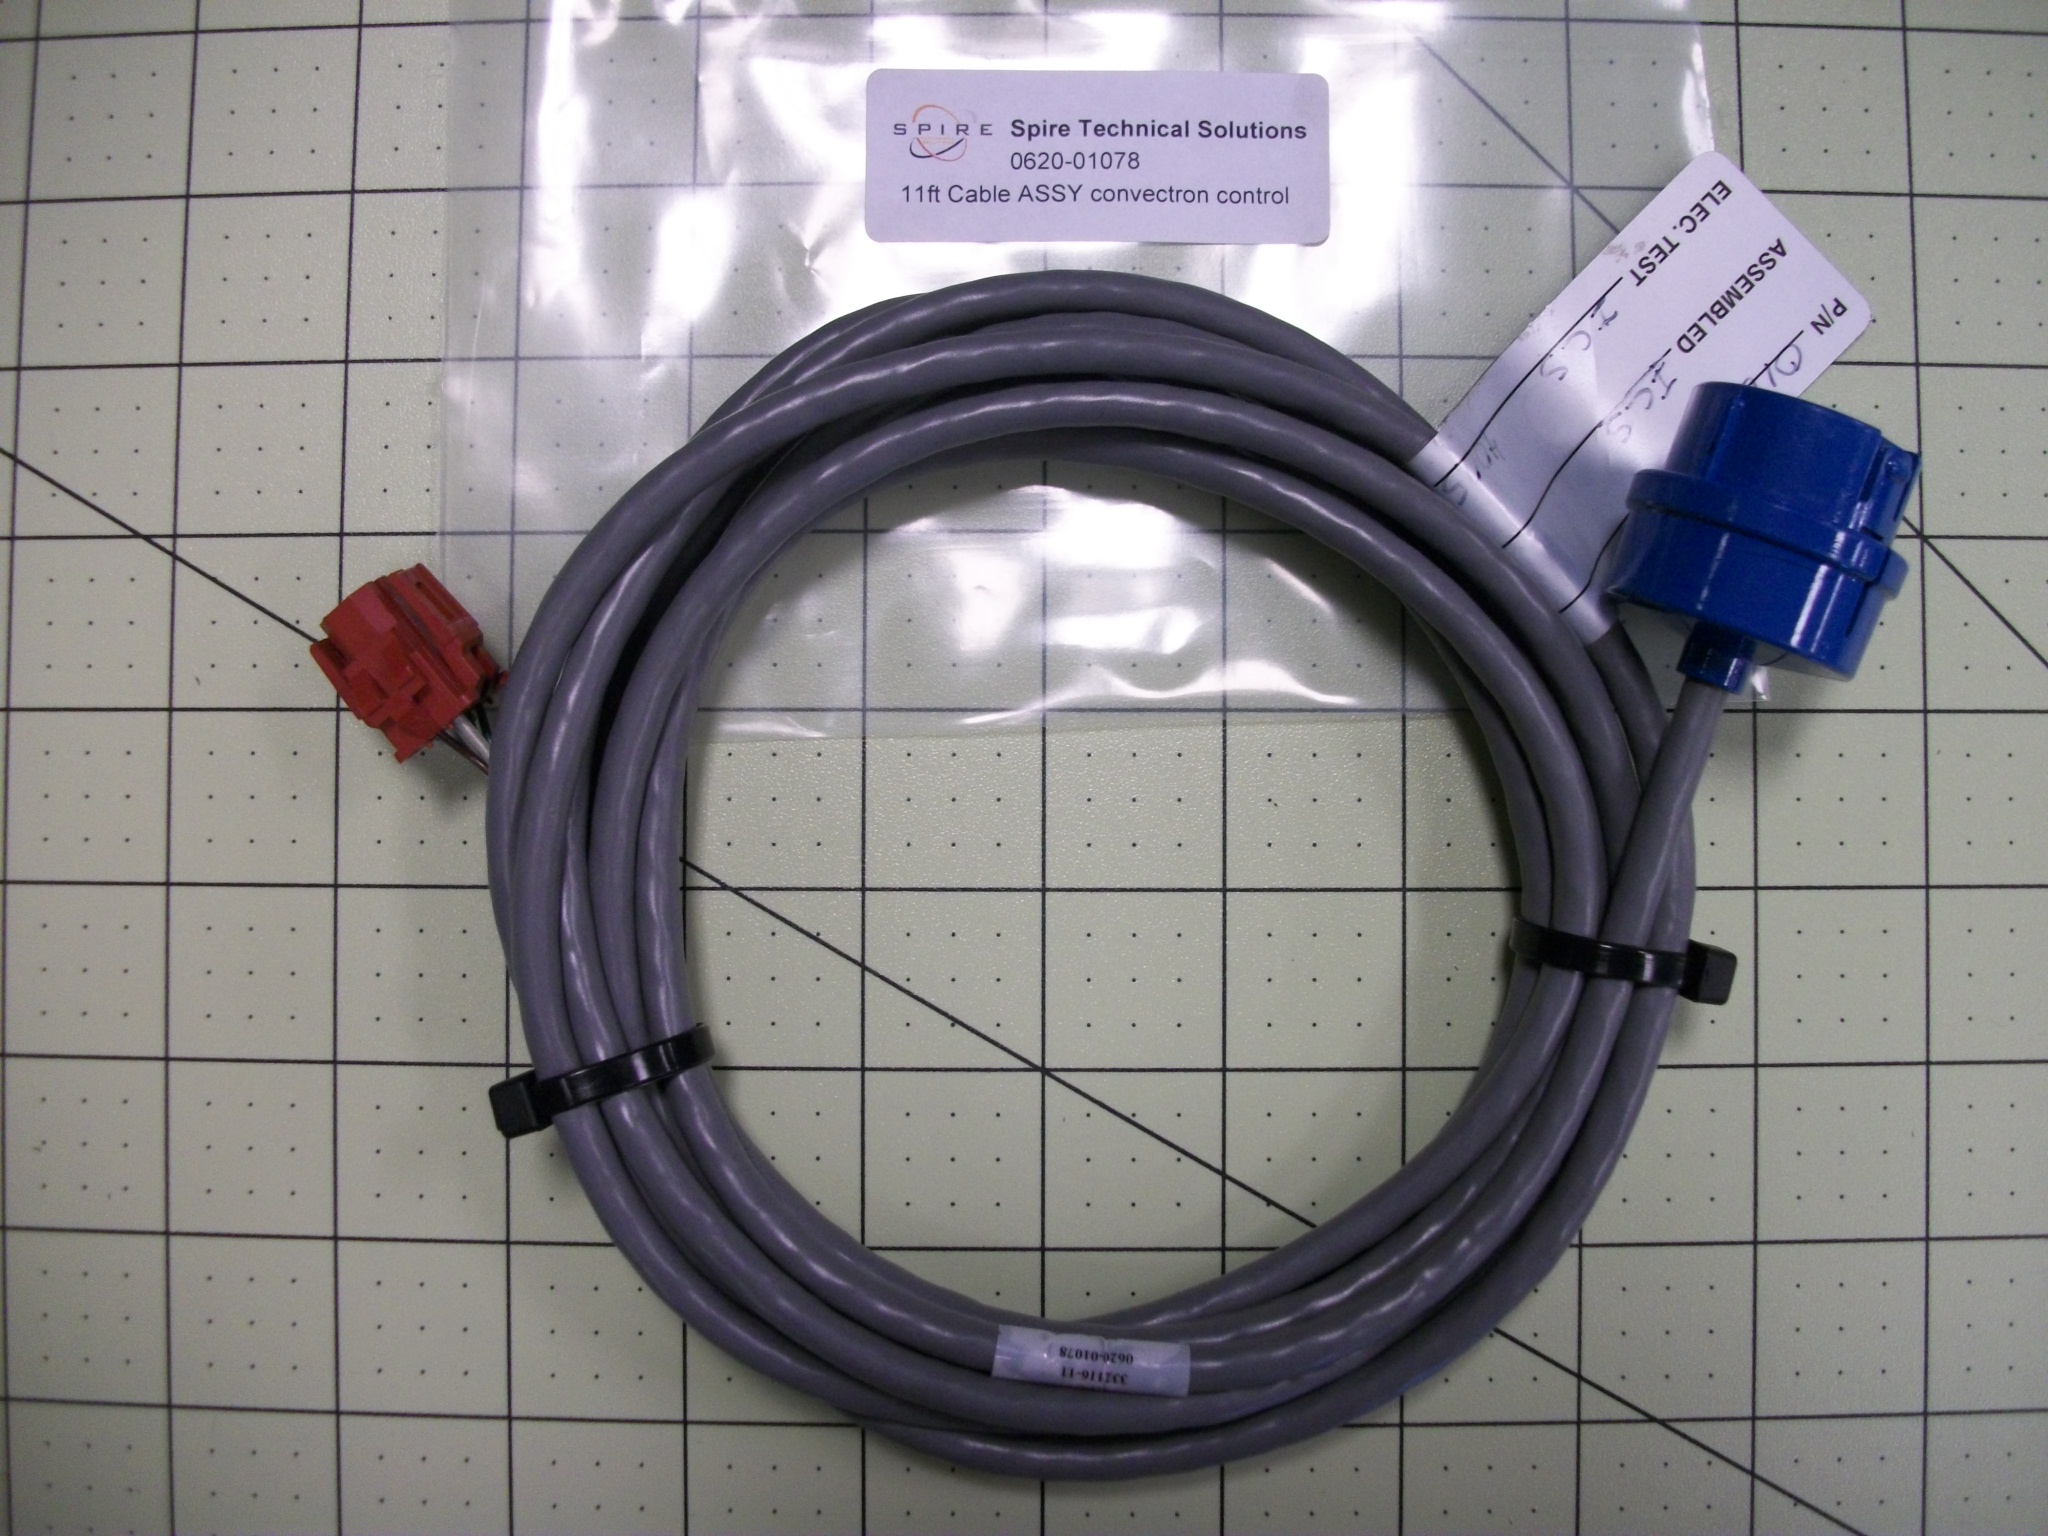 11ft Cable ASSY convectron control